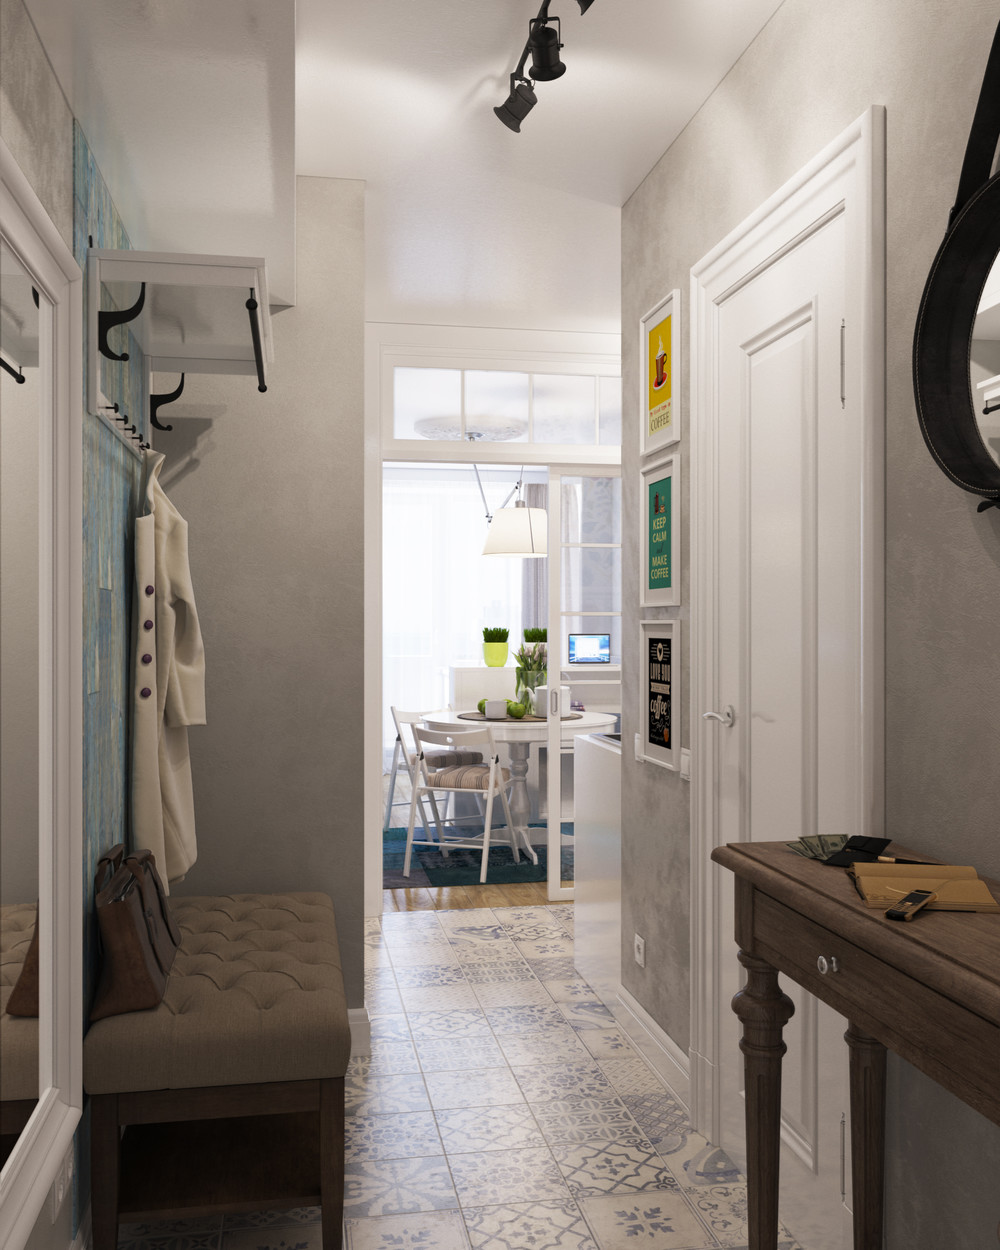 Designing for super small spaces 5 micro apartments - Corridor decoratie ...